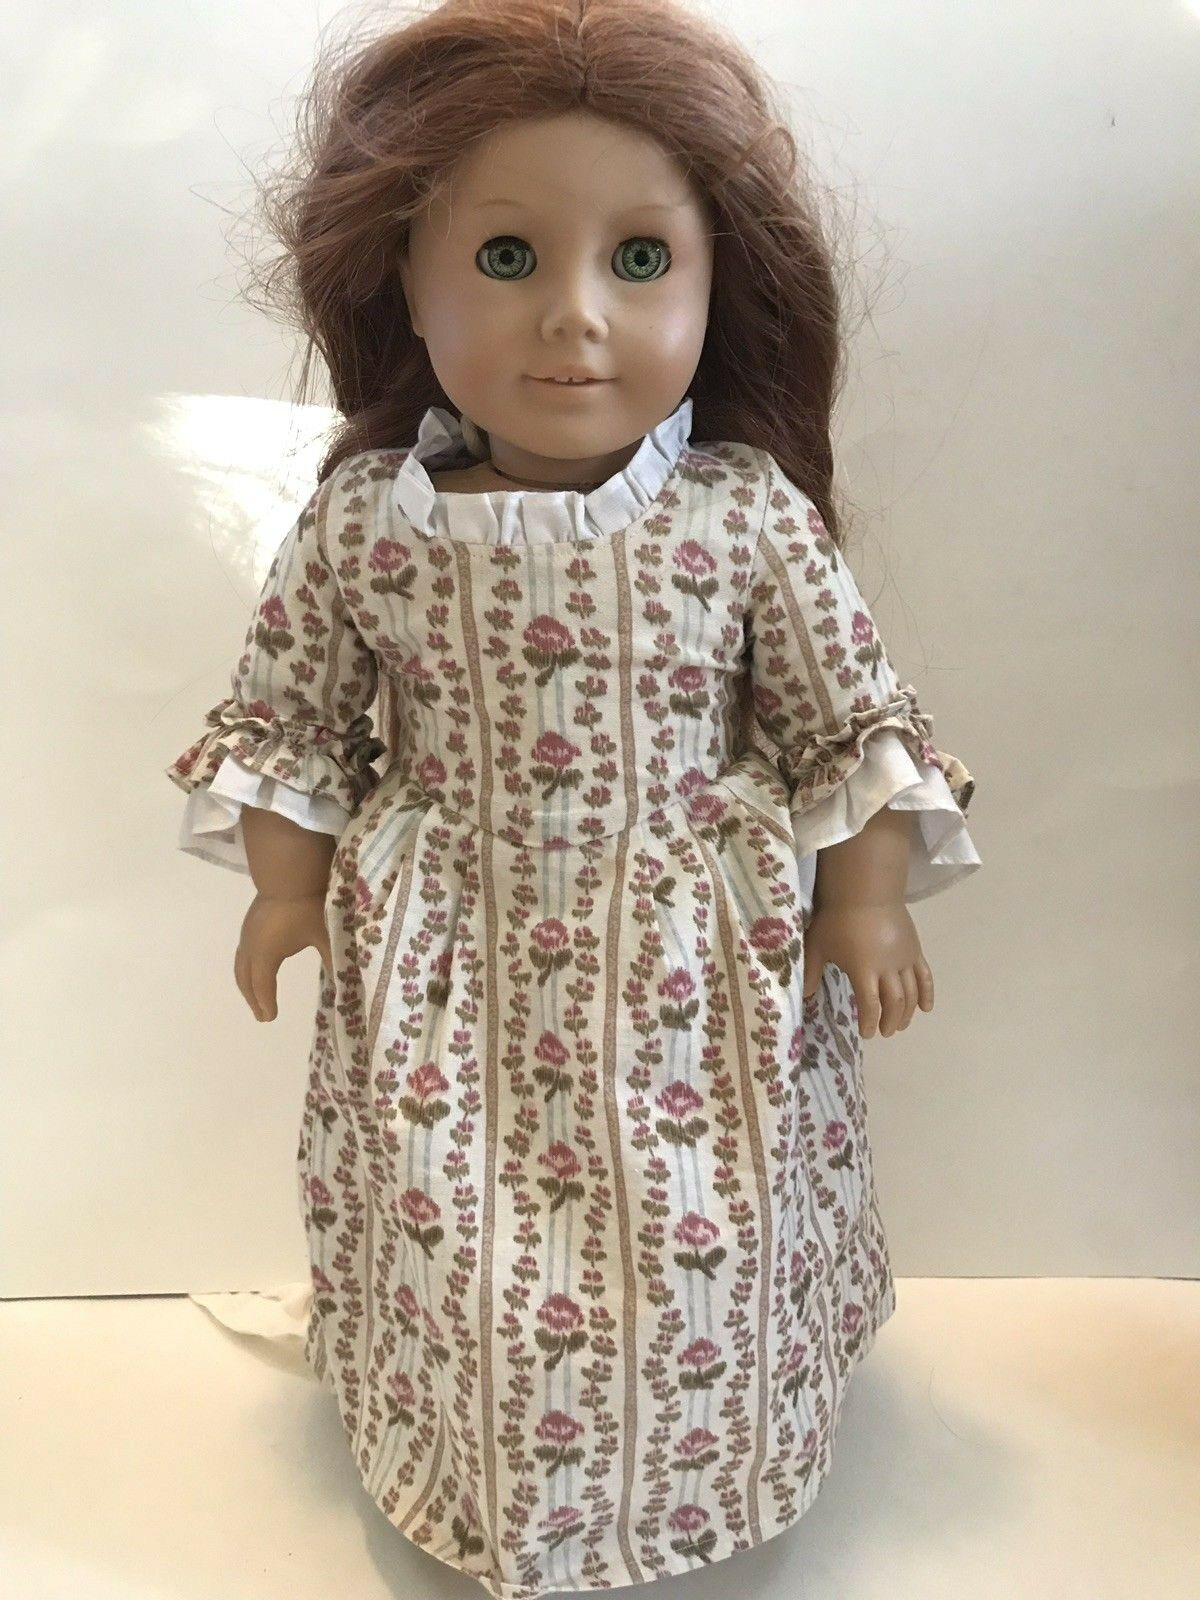 Doris Stannat Resin Puppe 52 Cm Limitierte Auflage Reasonable Price Art Dolls-ooak Dolls